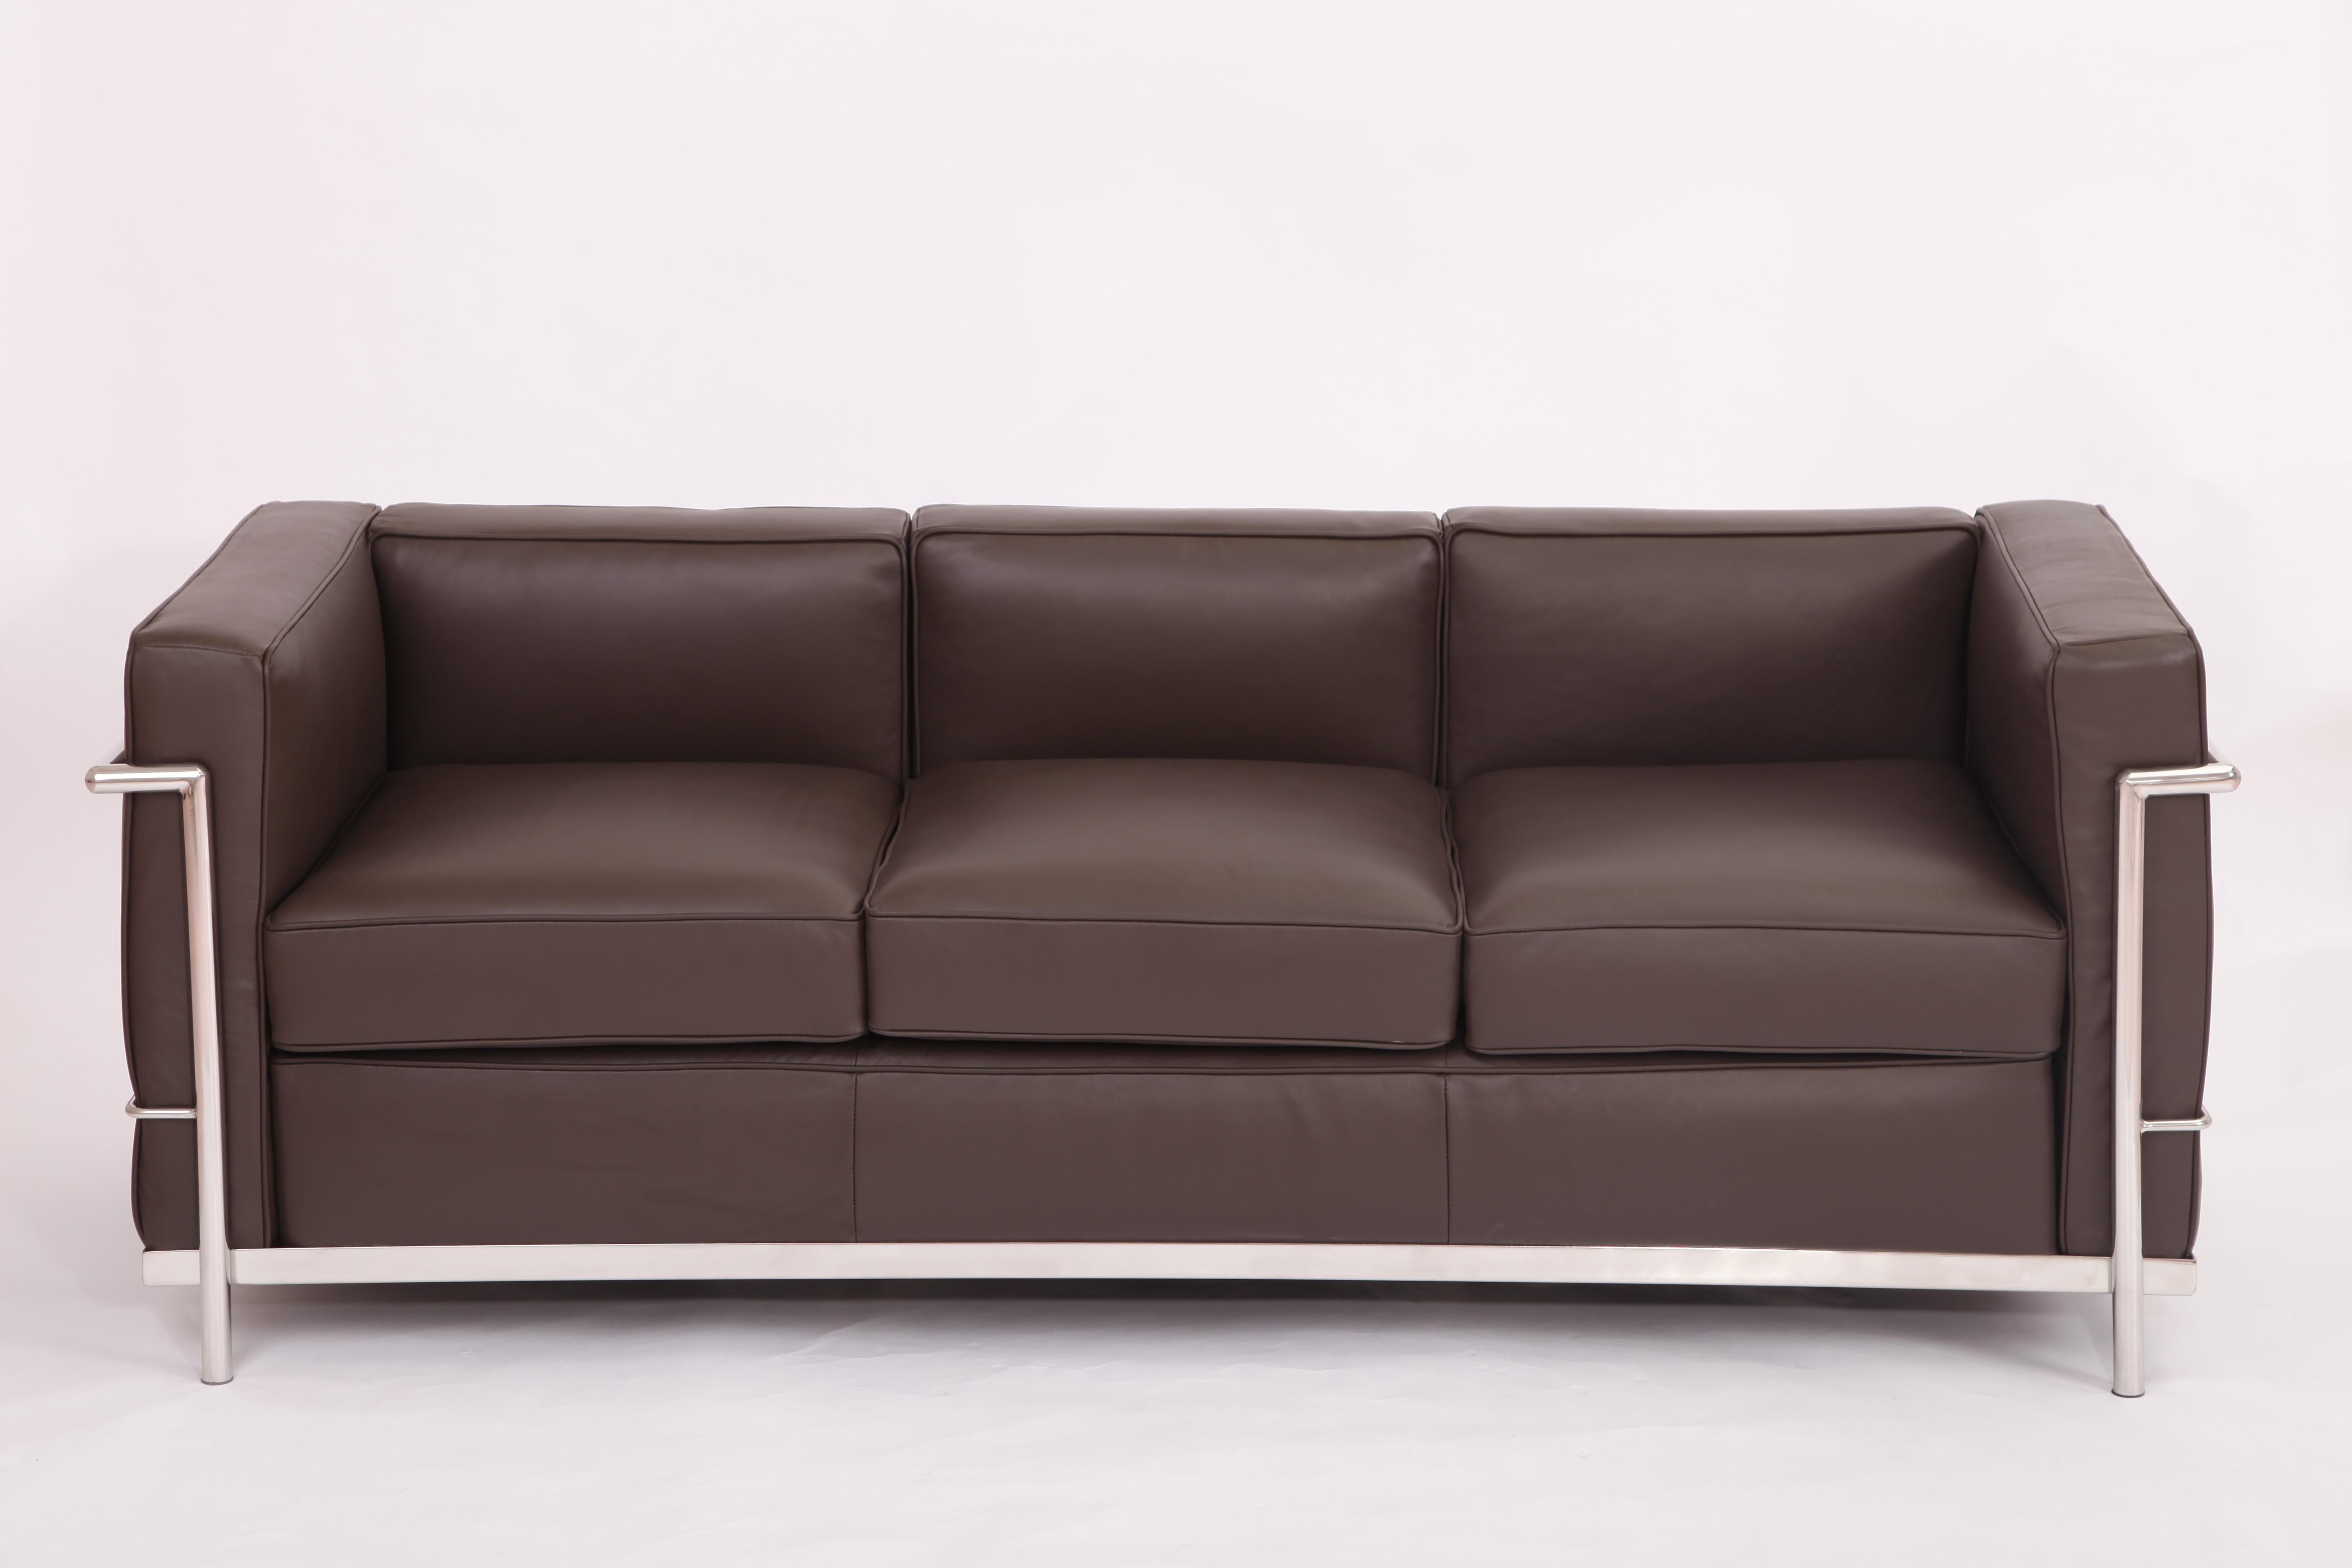 Chocolate full grain leather lc2 3 seater sofa replica le corbusier sofa and chair pinterest Le corbusier lc2 sofa